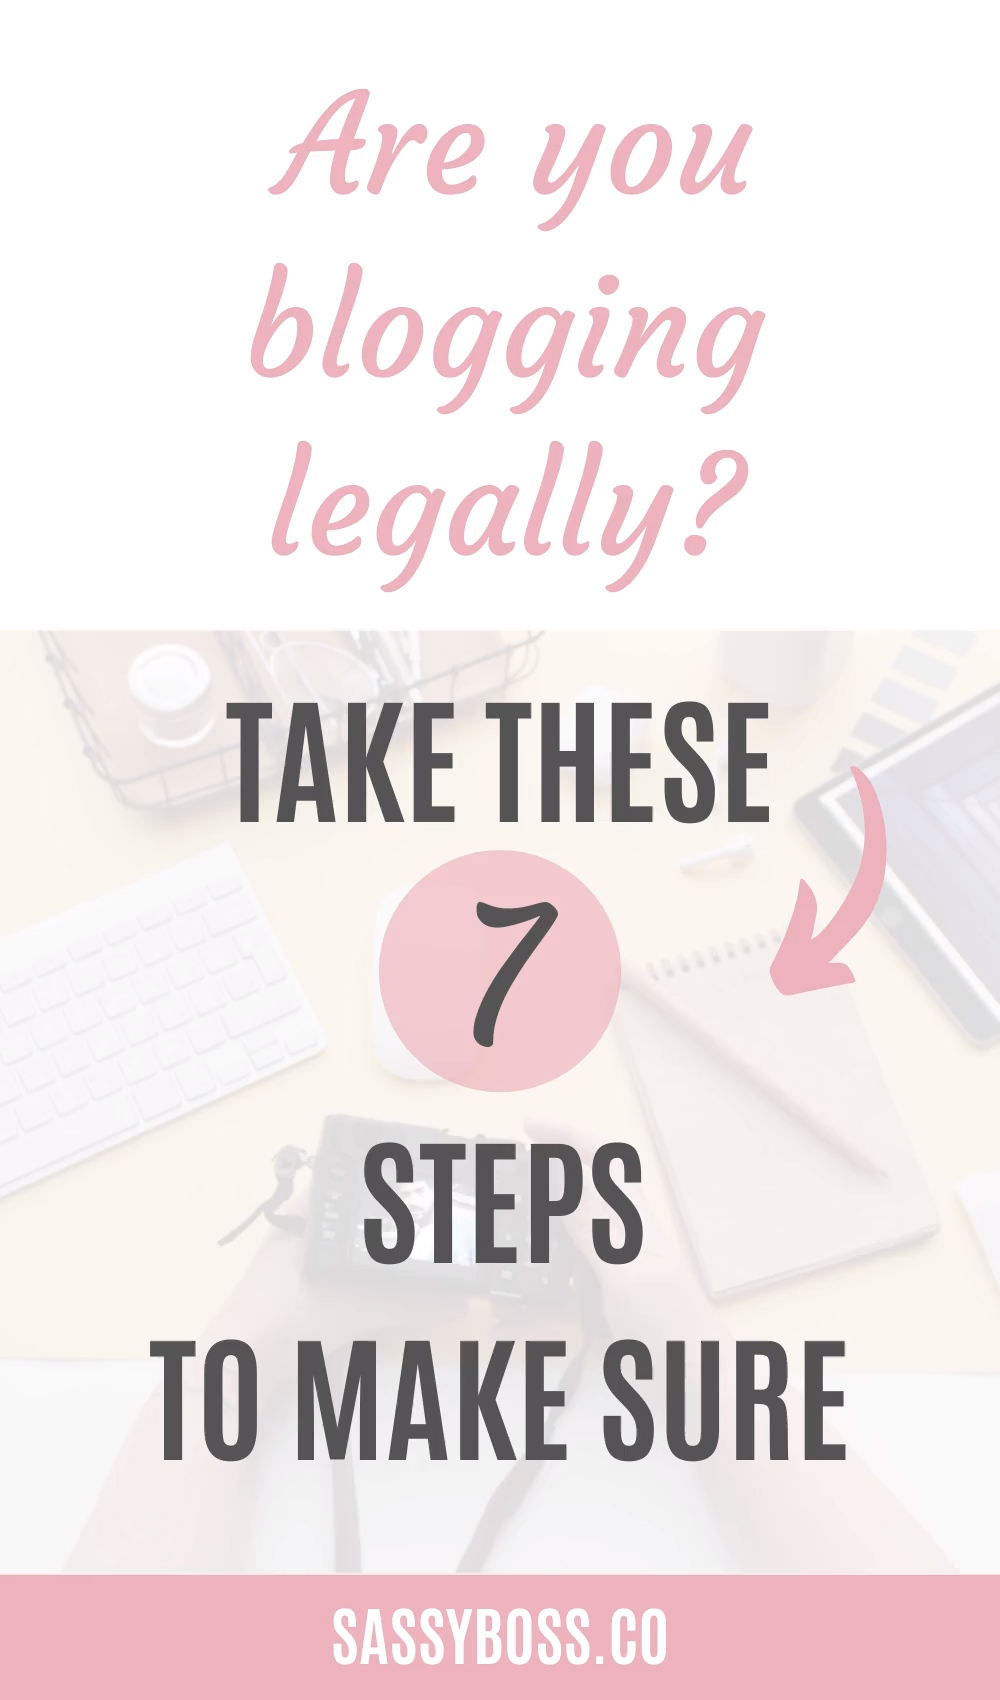 Are You Blogging Legally?